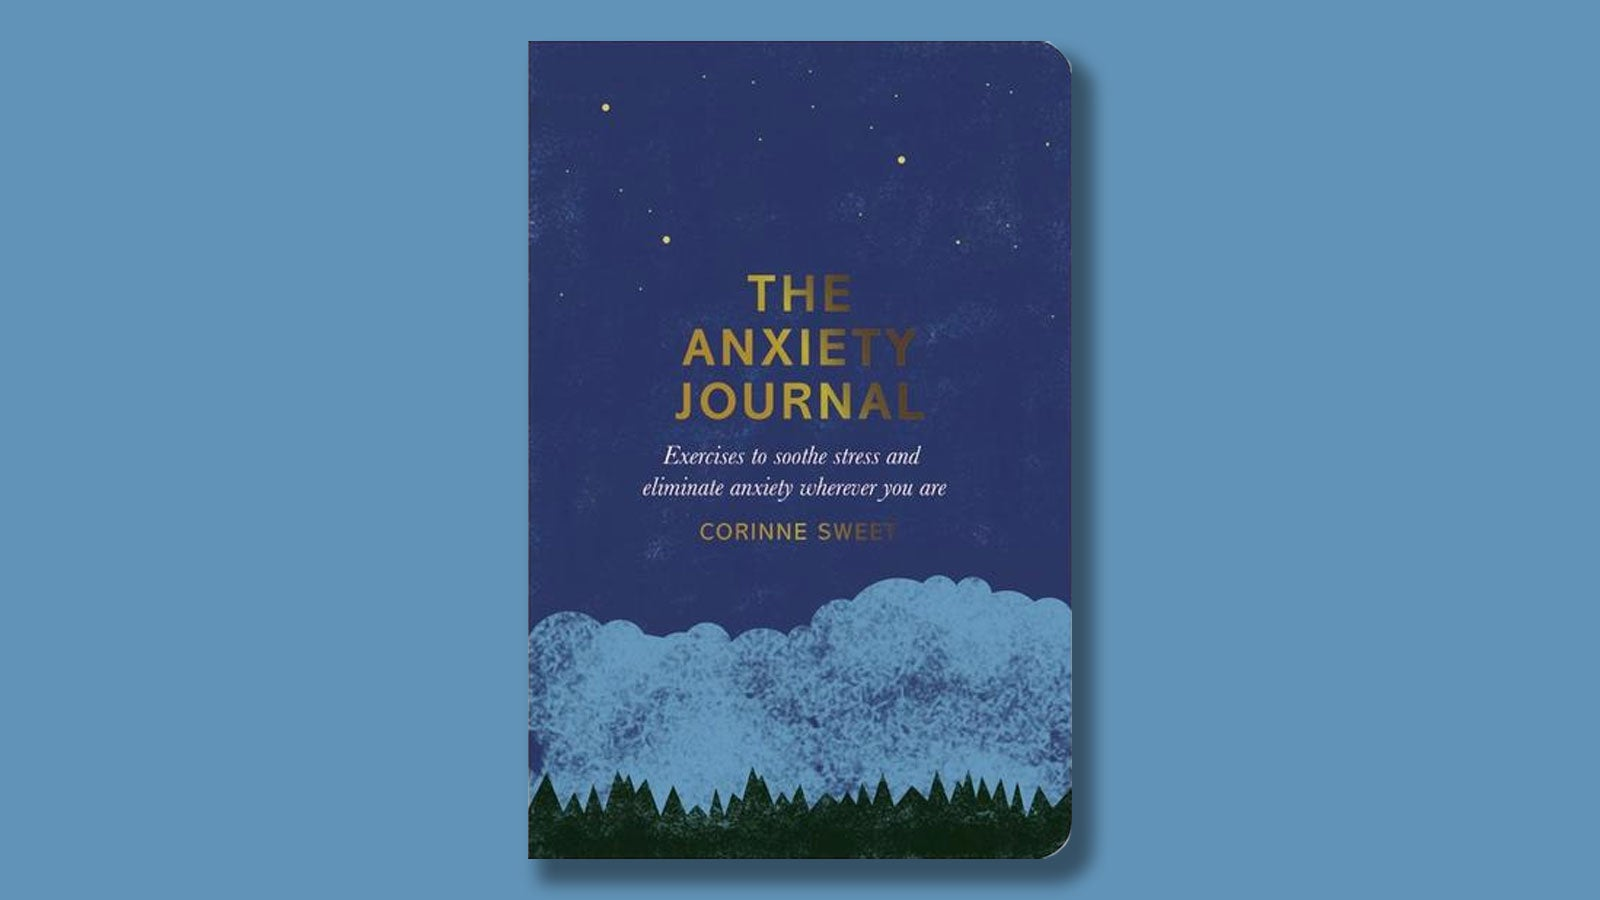 The Anxiety Journal by Corinne Sweet on a light blue background.